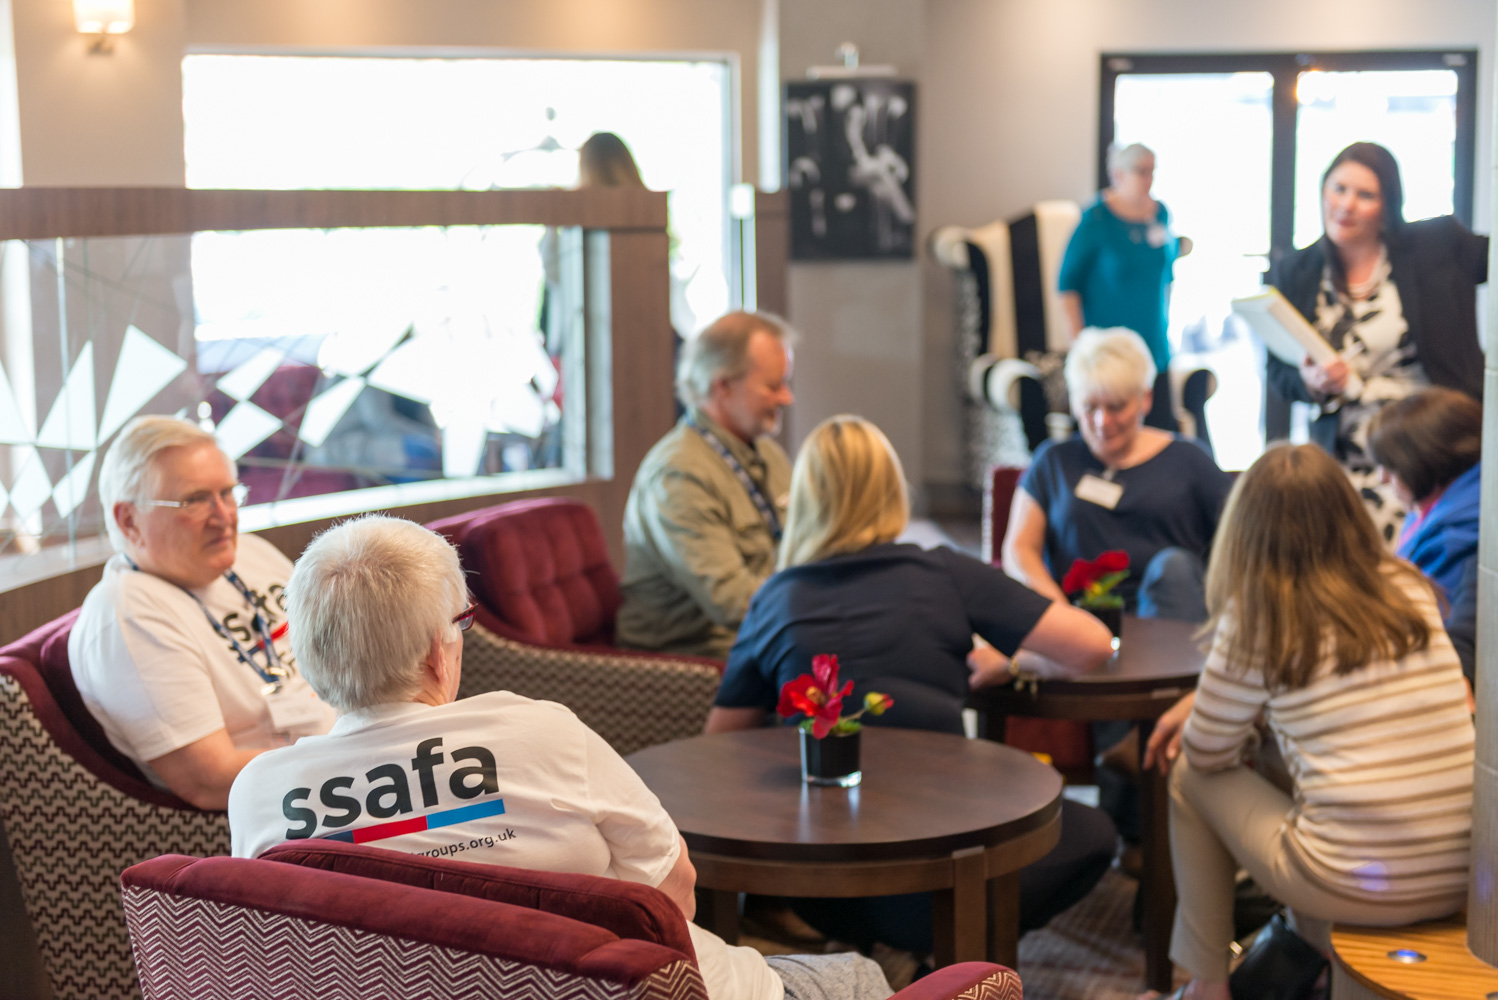 Paul Hands Photography, SSAFA, Armed Forces Charity, Hinckley, Leicestershire, Warwickshire, Midlands, England, United Kingdom, Europe, Jury's Inn, Hinckley Island Hotel, Professional Photographer